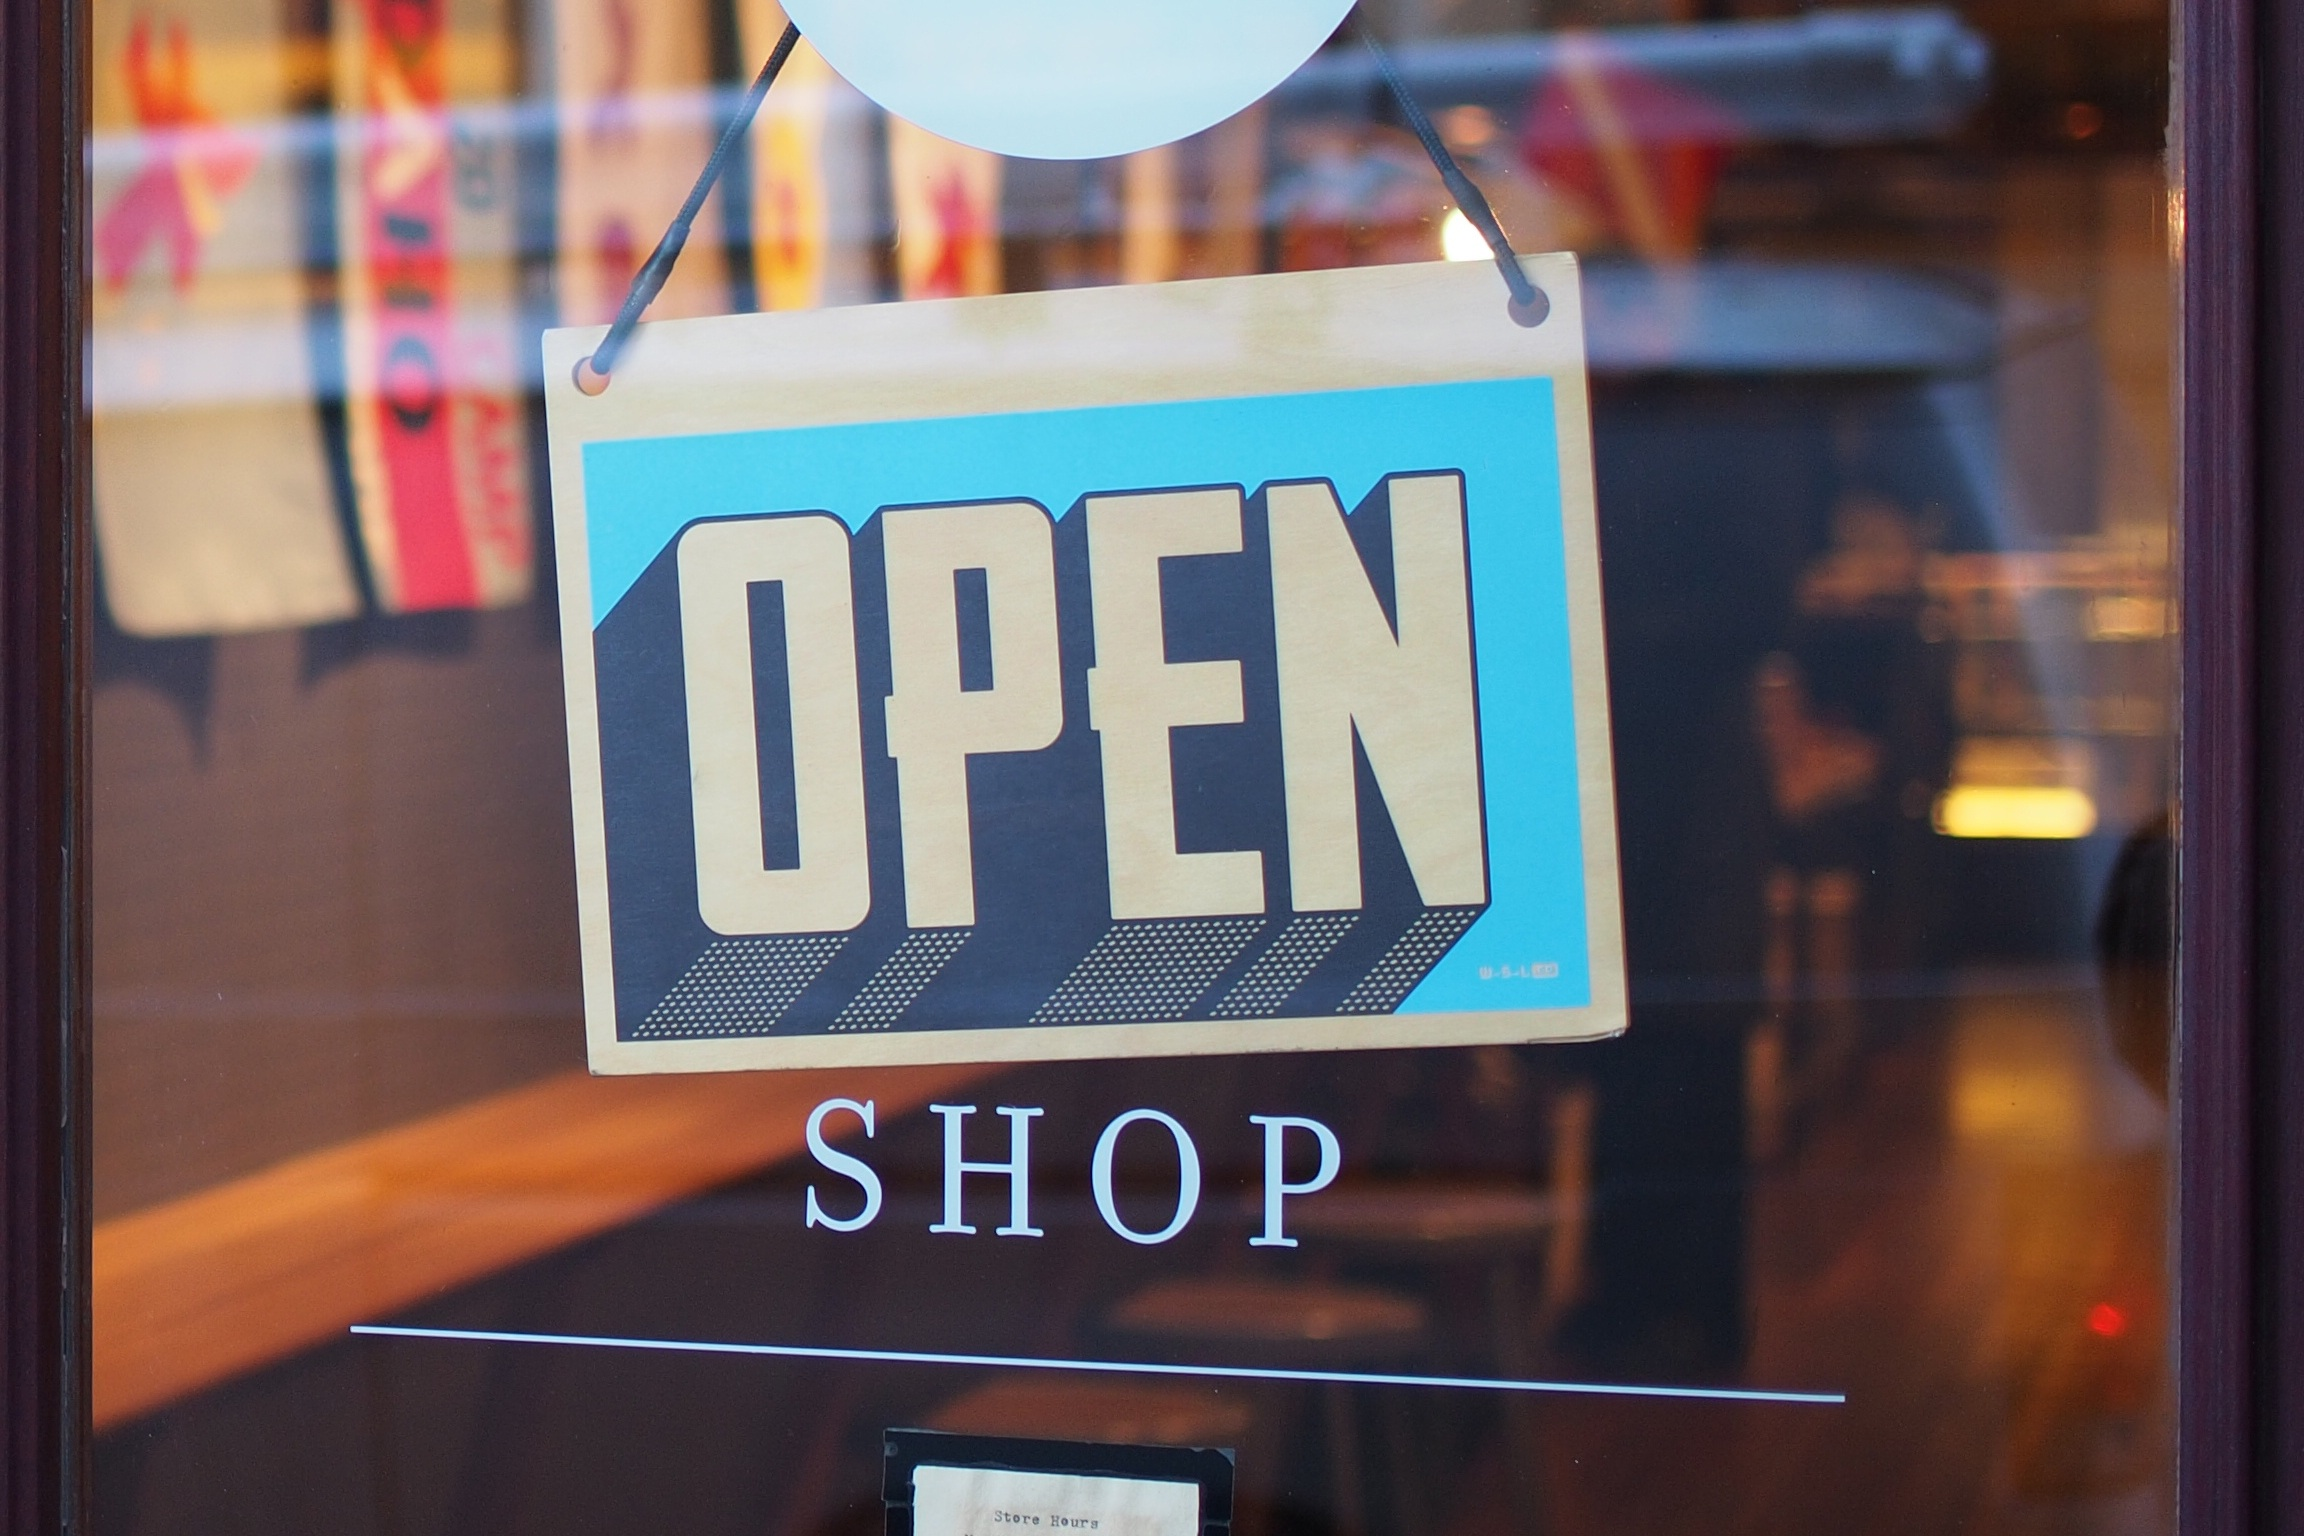 Misinformation online costs independent high street businesses £6.1 billion a year - Nominet